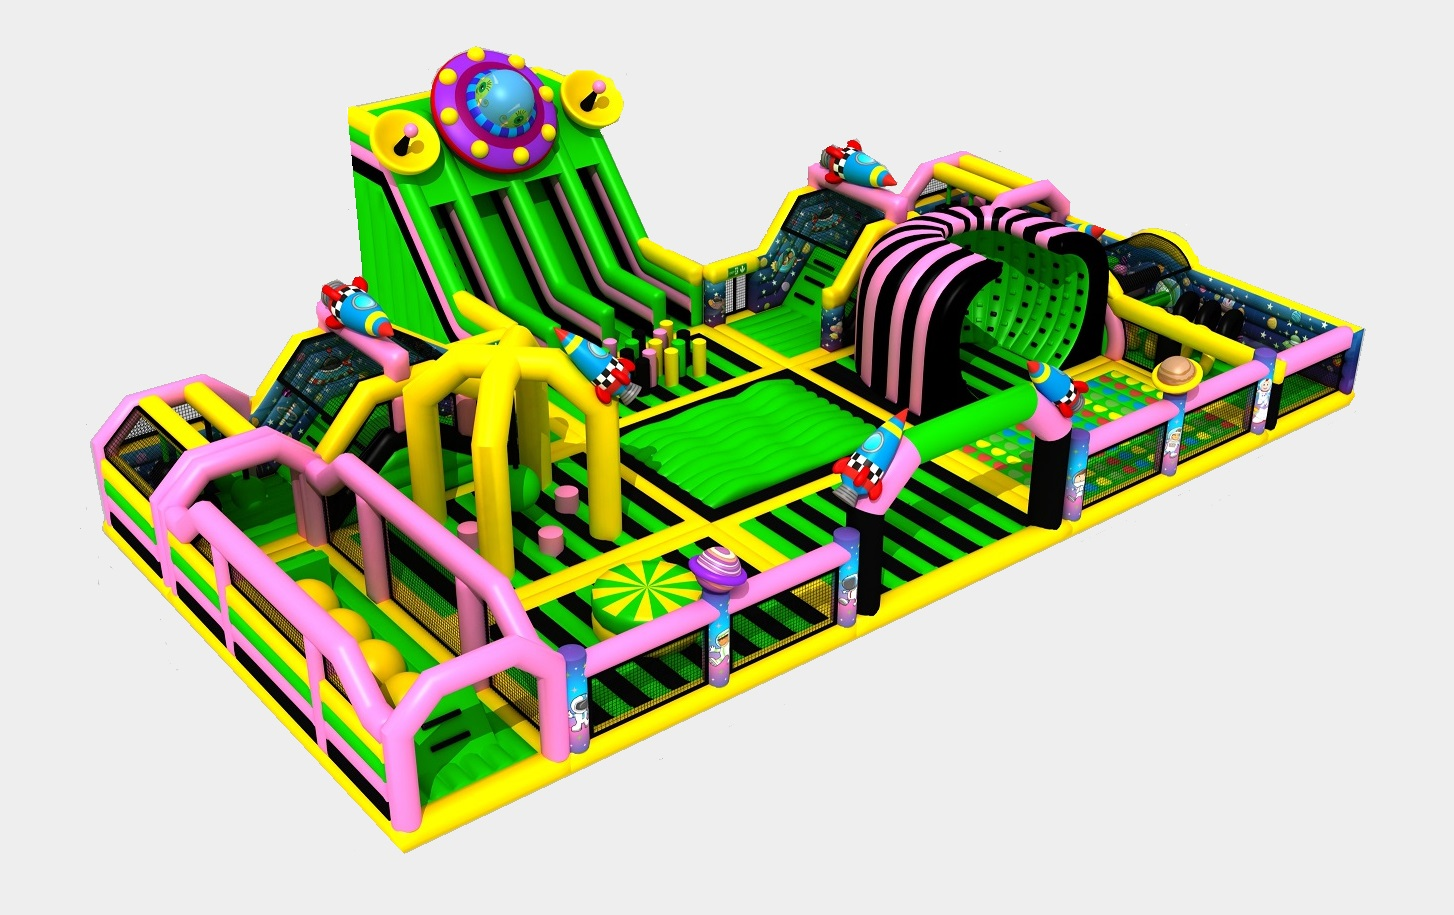 Design Inflatable Park Space